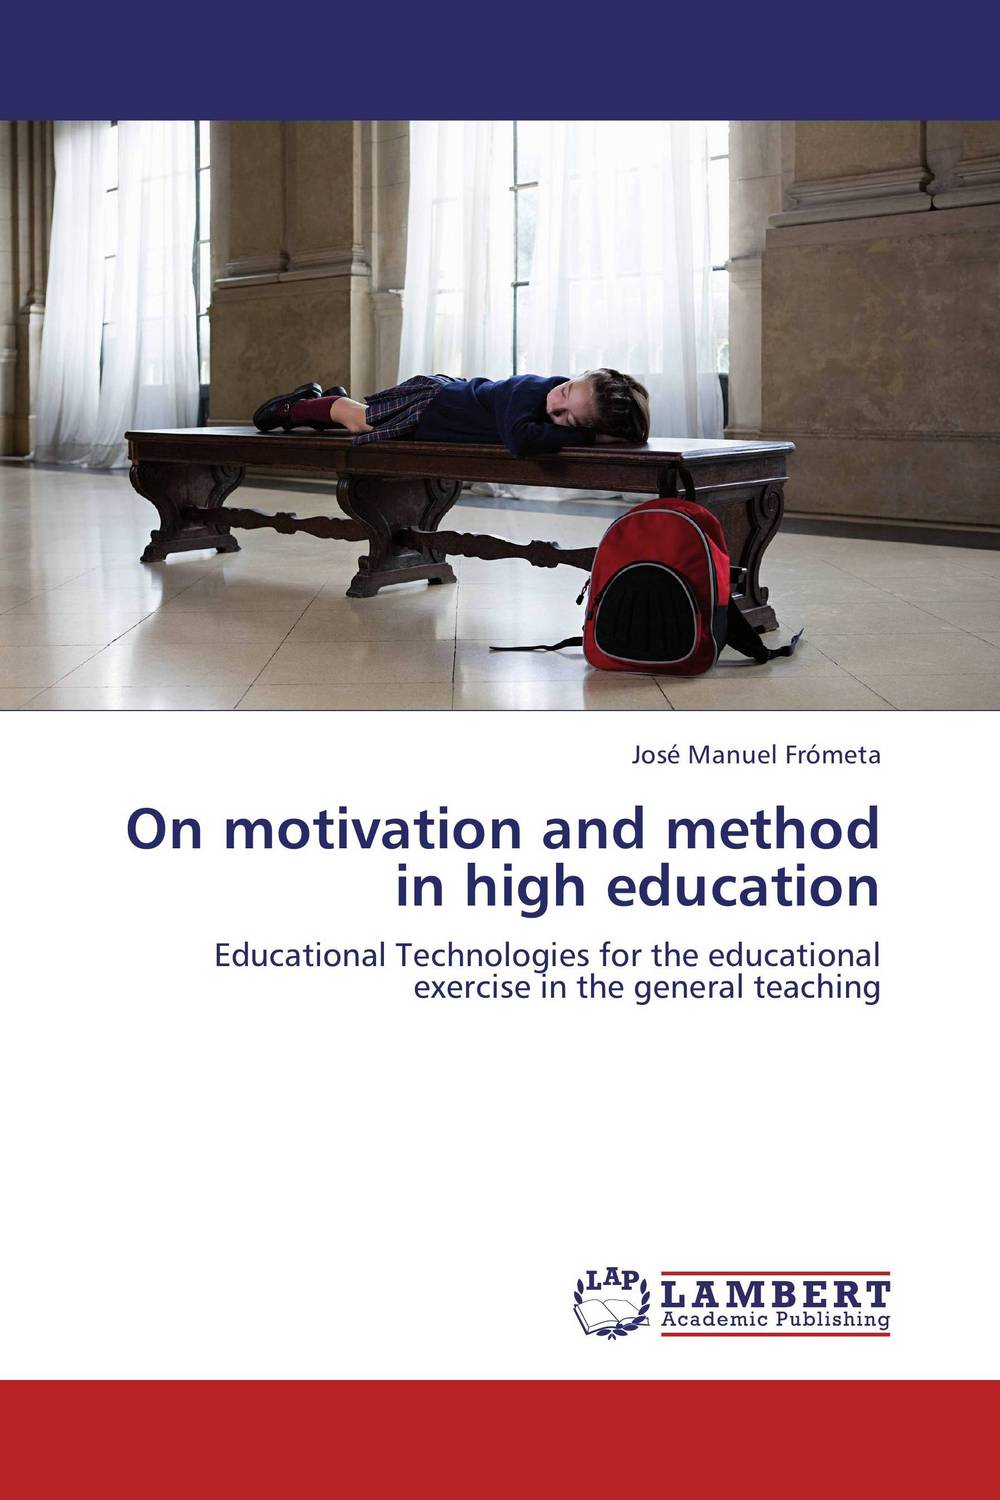 On motivation and method in high education